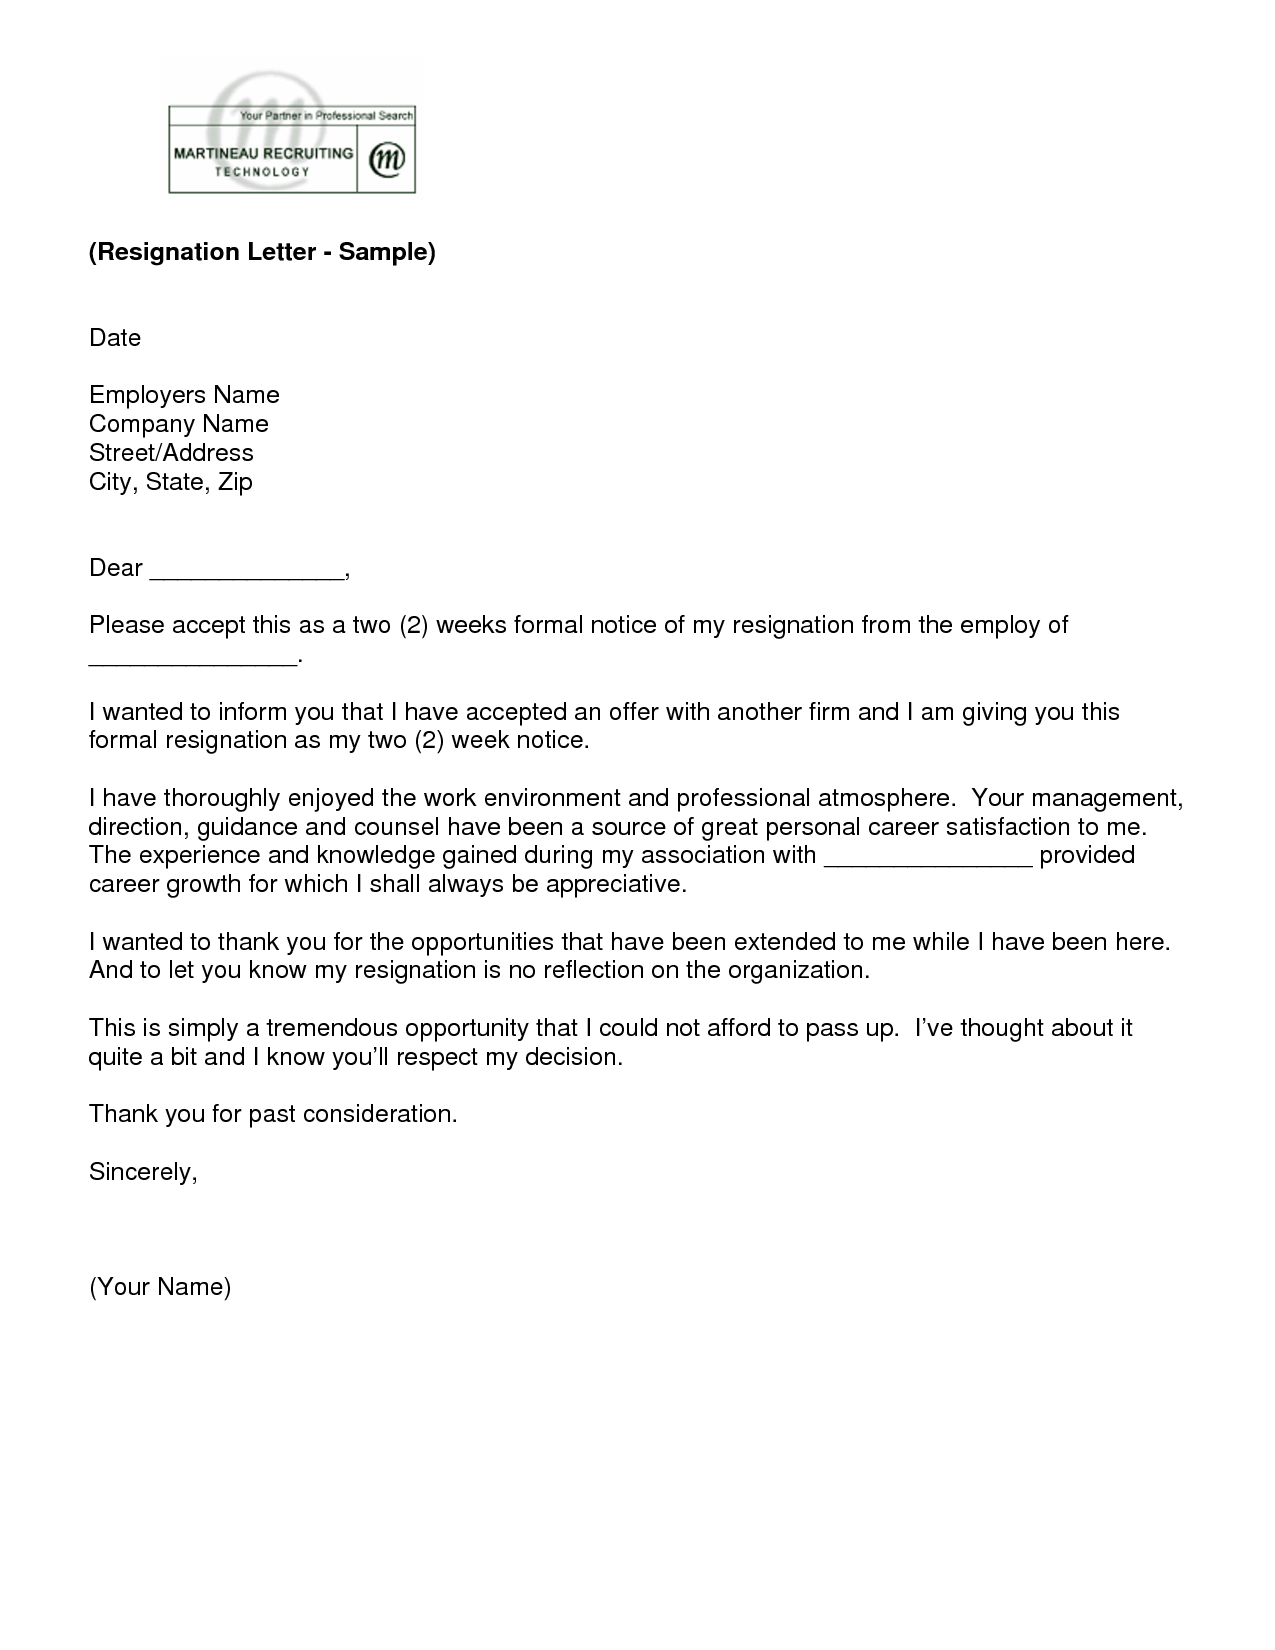 Letter of resignation 2 weeks notice template ew adulthood letter of resignation 2 weeks notice template spiritdancerdesigns Images